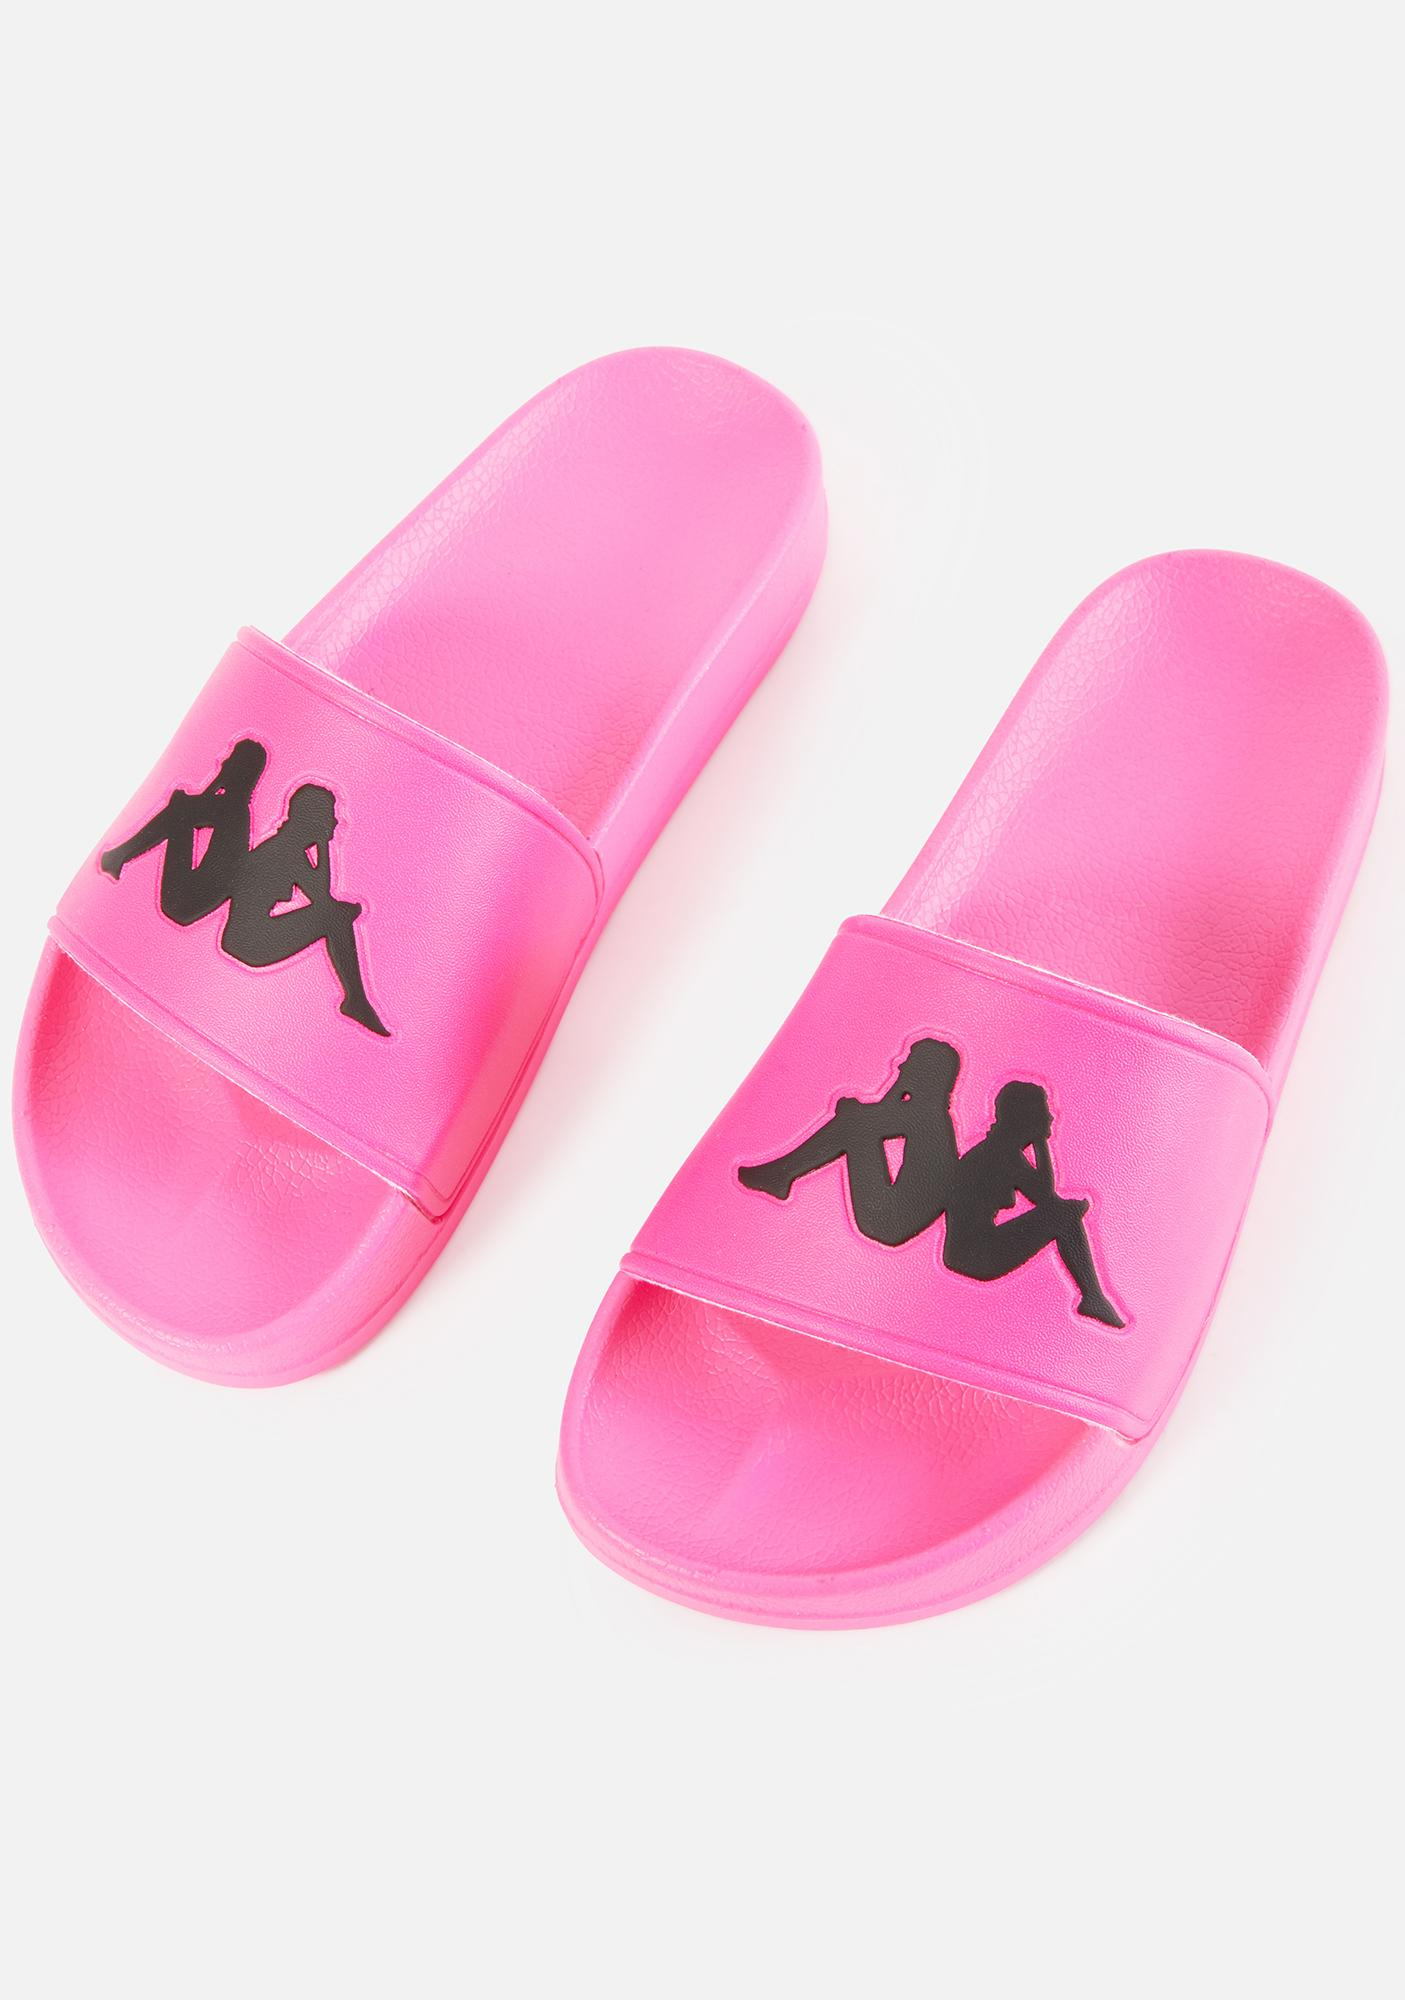 Kappa Neon Pink Authentic Adam 2 Slide Sandals